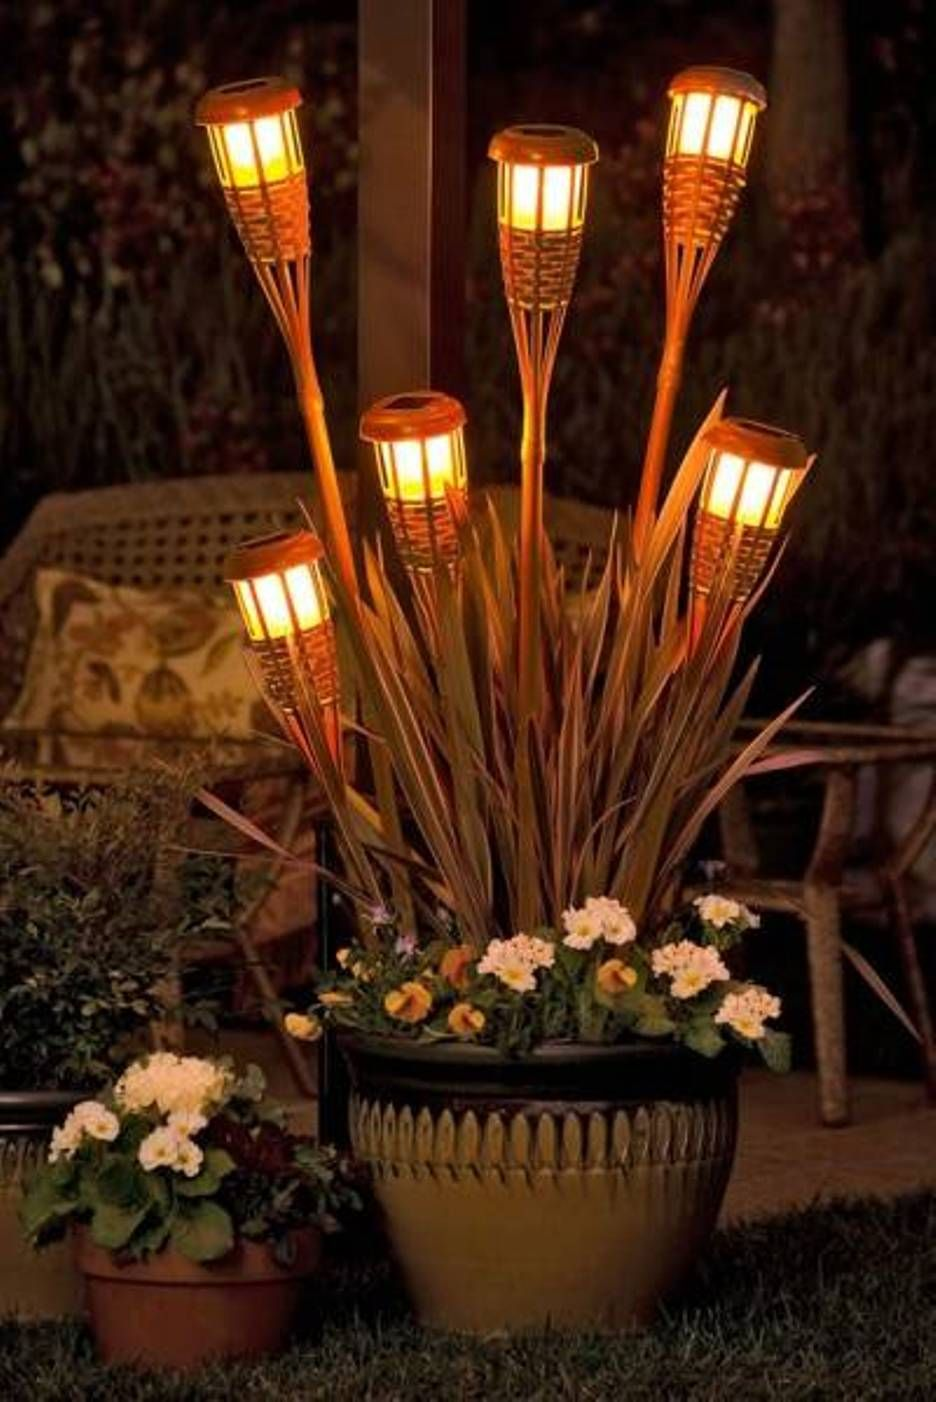 Surprising Stunning Decorative Outdoor Patio Lights